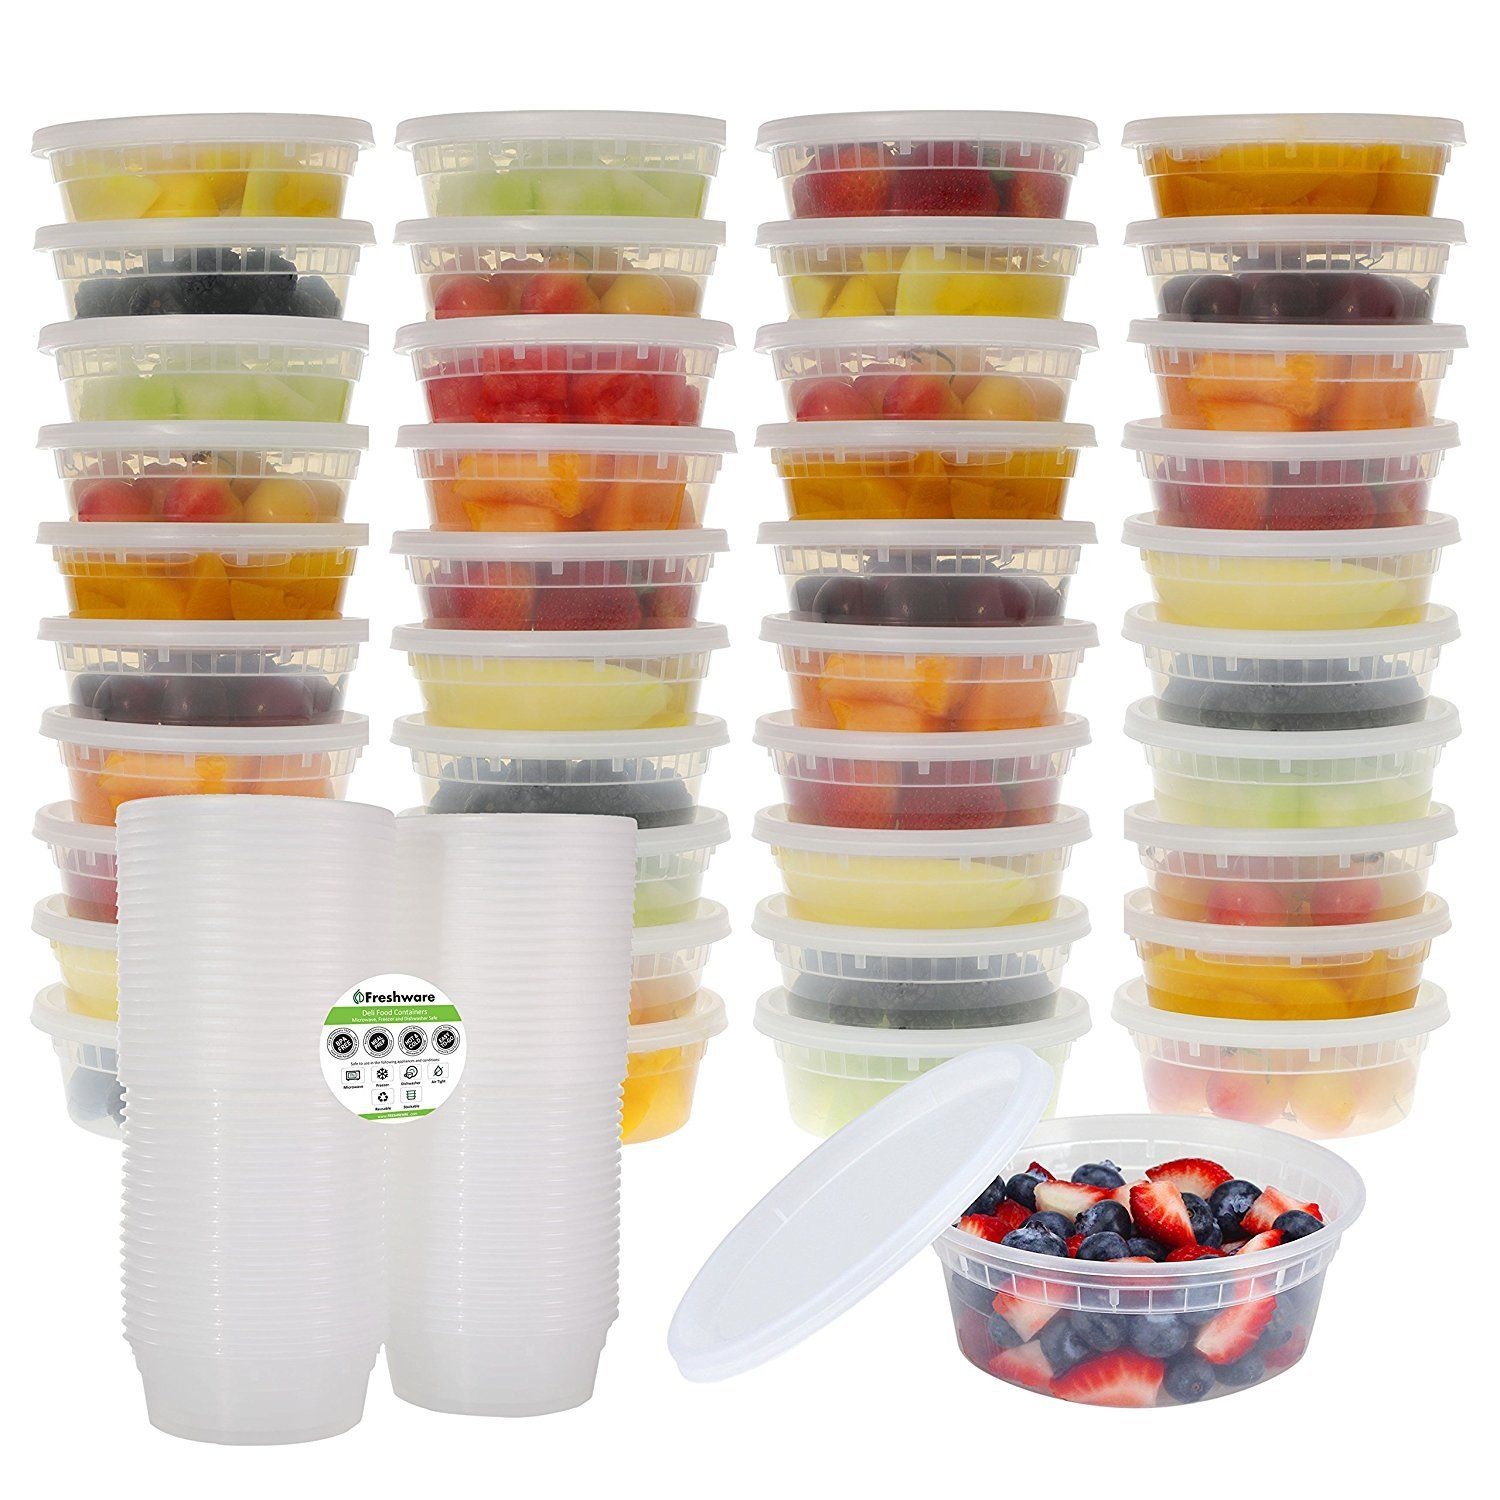 Freshware 40-Pack 8 oz Plastic Food Storage Containers with Airtight Lids 1